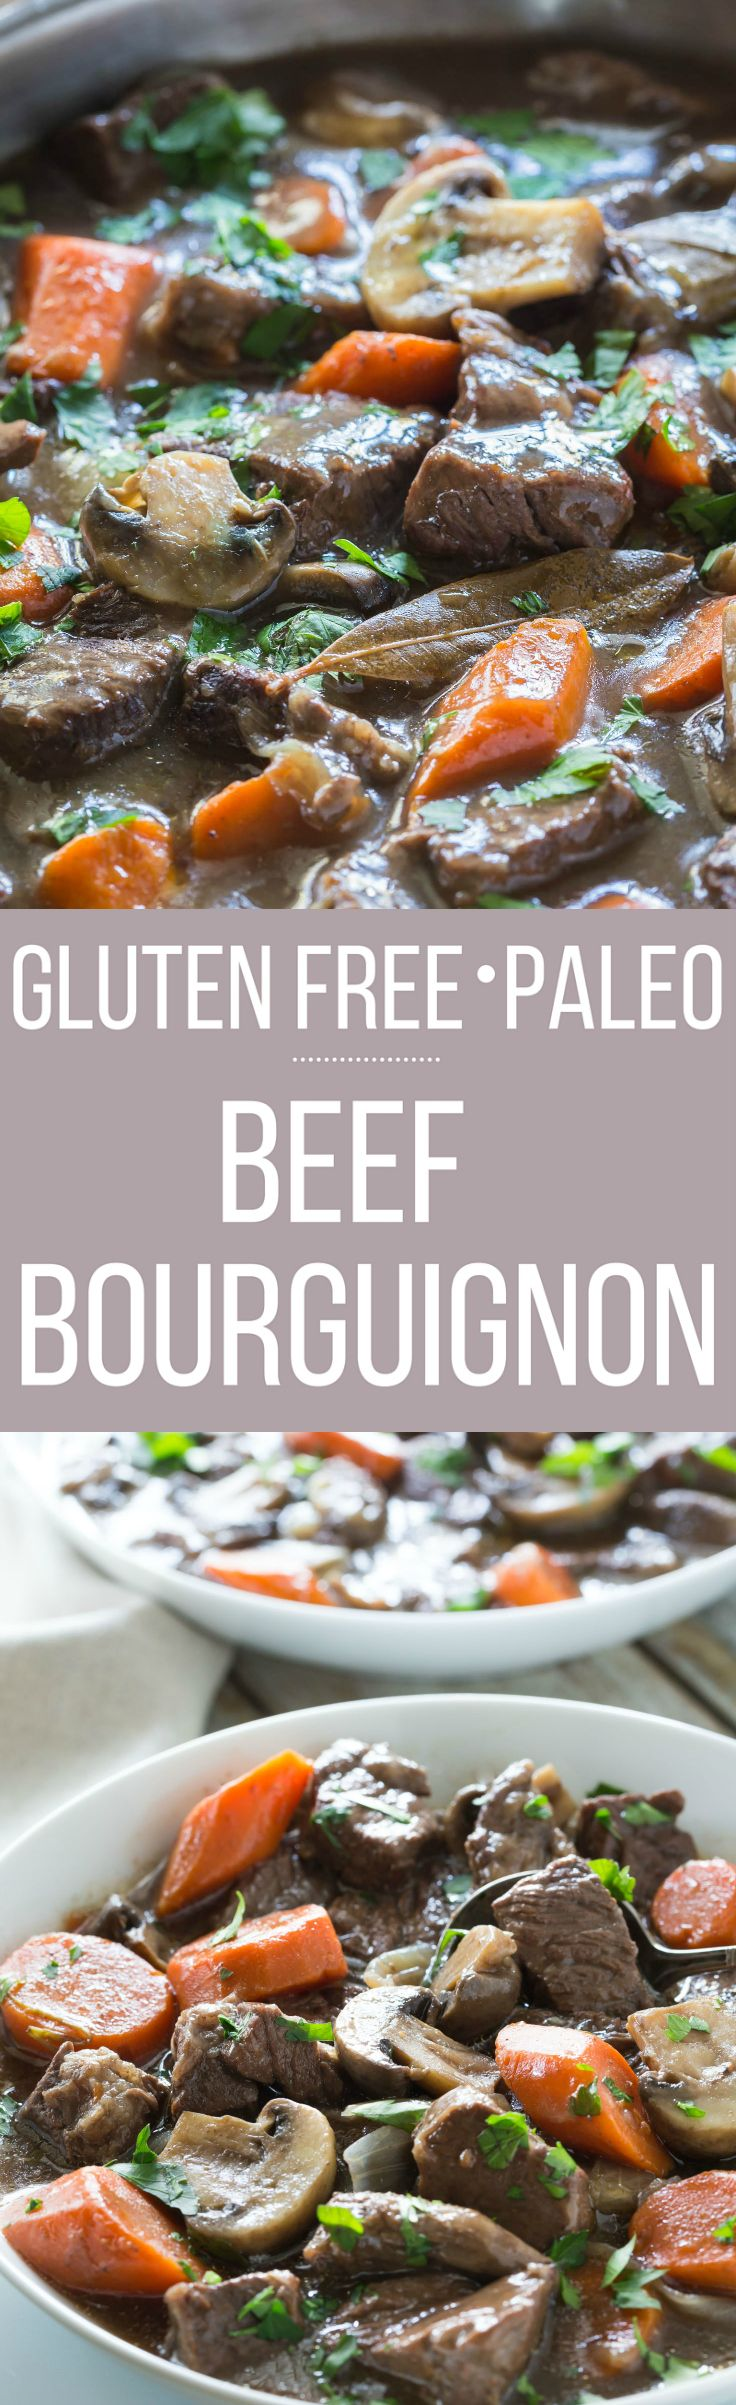 Gluten Free Beef Bourguignon (Beef Burgundy, or Beef in Red Wine) is a classic French dish. Make it Paleo too, and cook it in your oven or slow cooker!